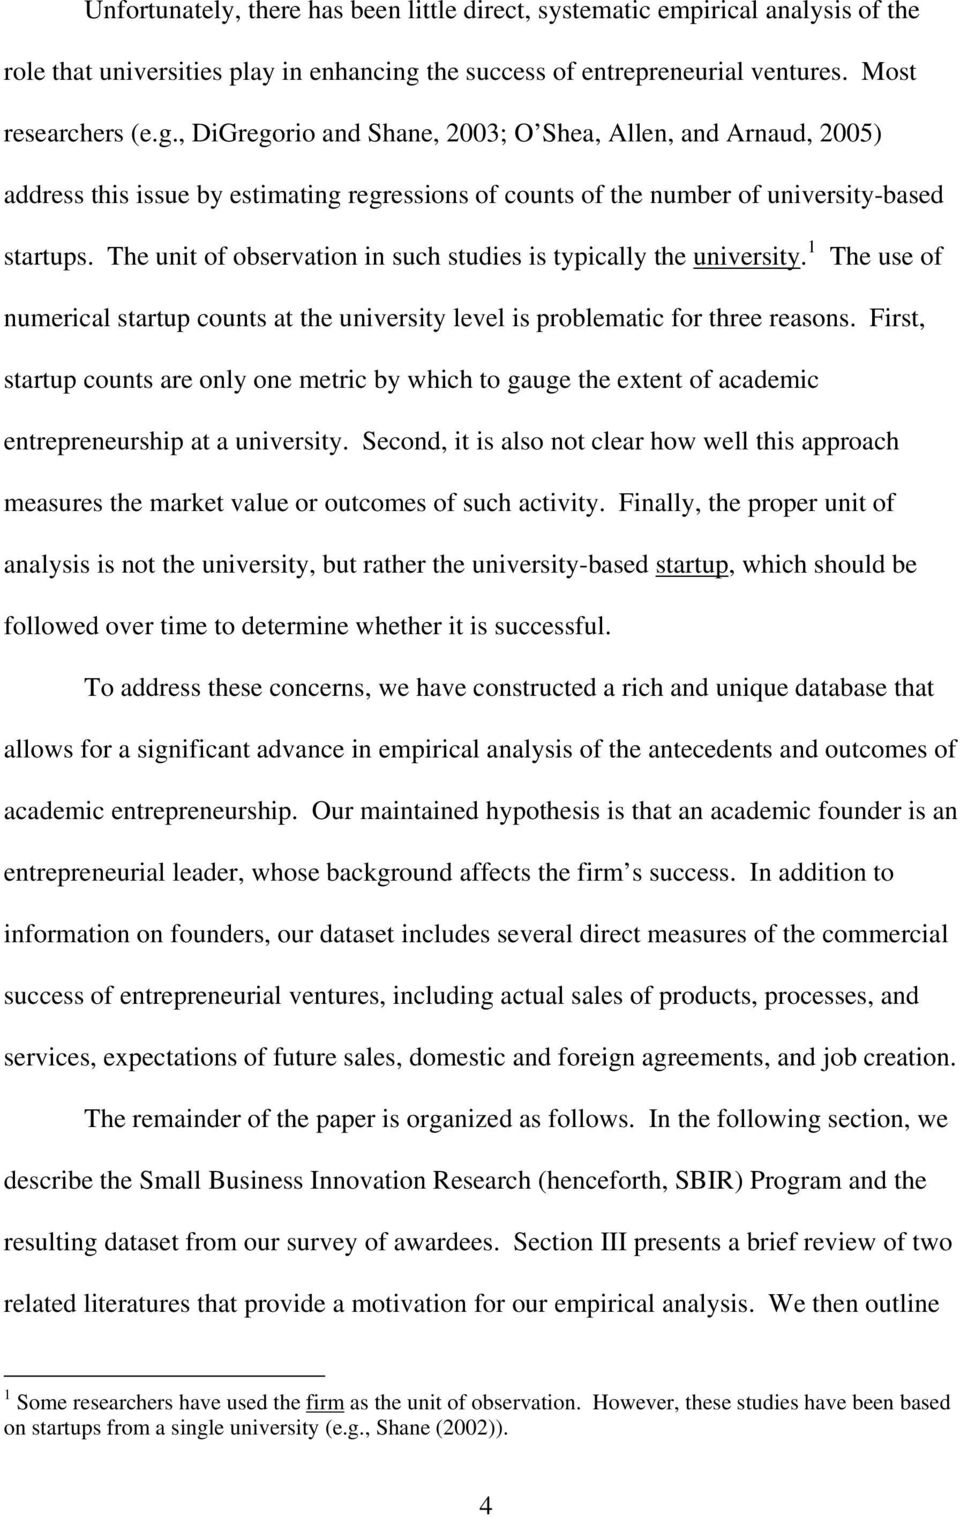 , DiGregorio and Shane, 2003; O Shea, Allen, and Arnaud, 2005) address this issue by estimating regressions of counts of the number of university-based startups.